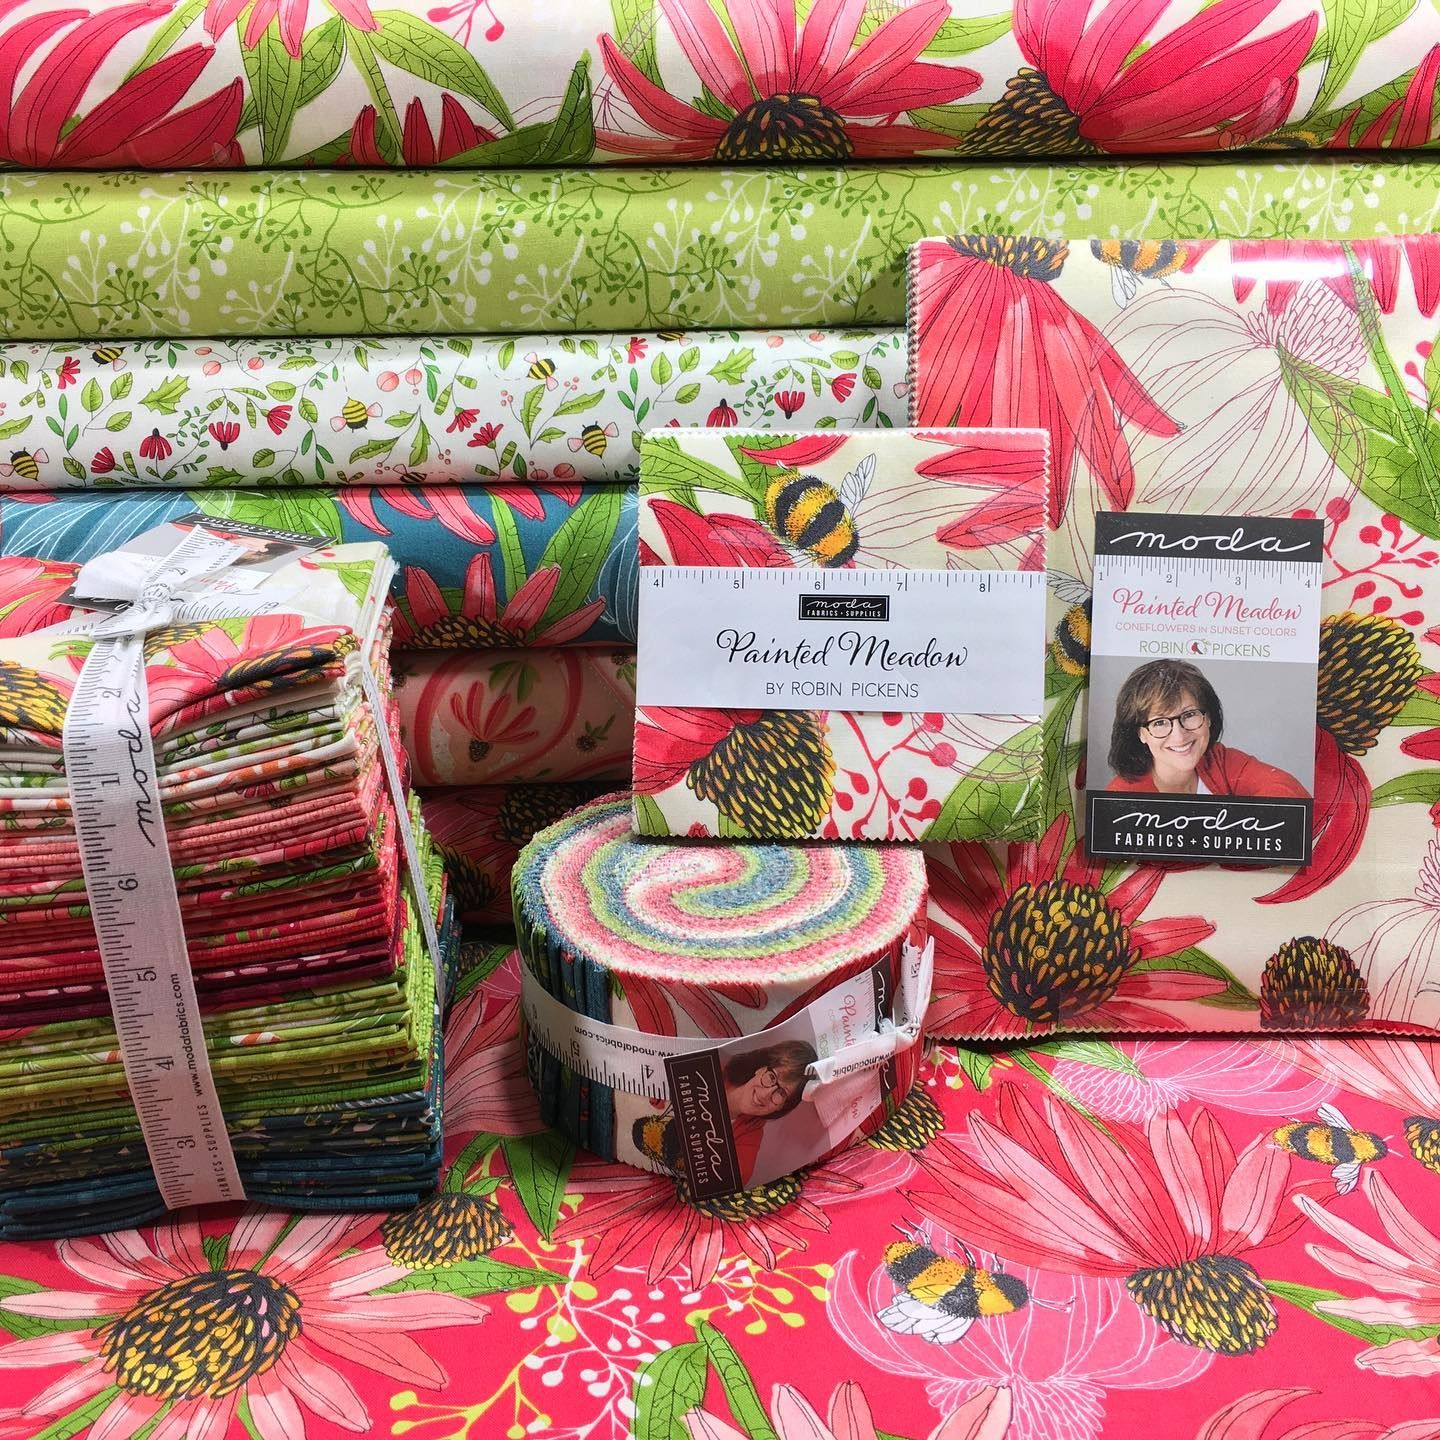 Painted Meadow By Robin Pickens It Is A Beautiful Garden Inspired Collection Myfavoritequiltstore Showmethemoda Modafabrics Ro In 2020 Quilt Stores Pickens Quilts